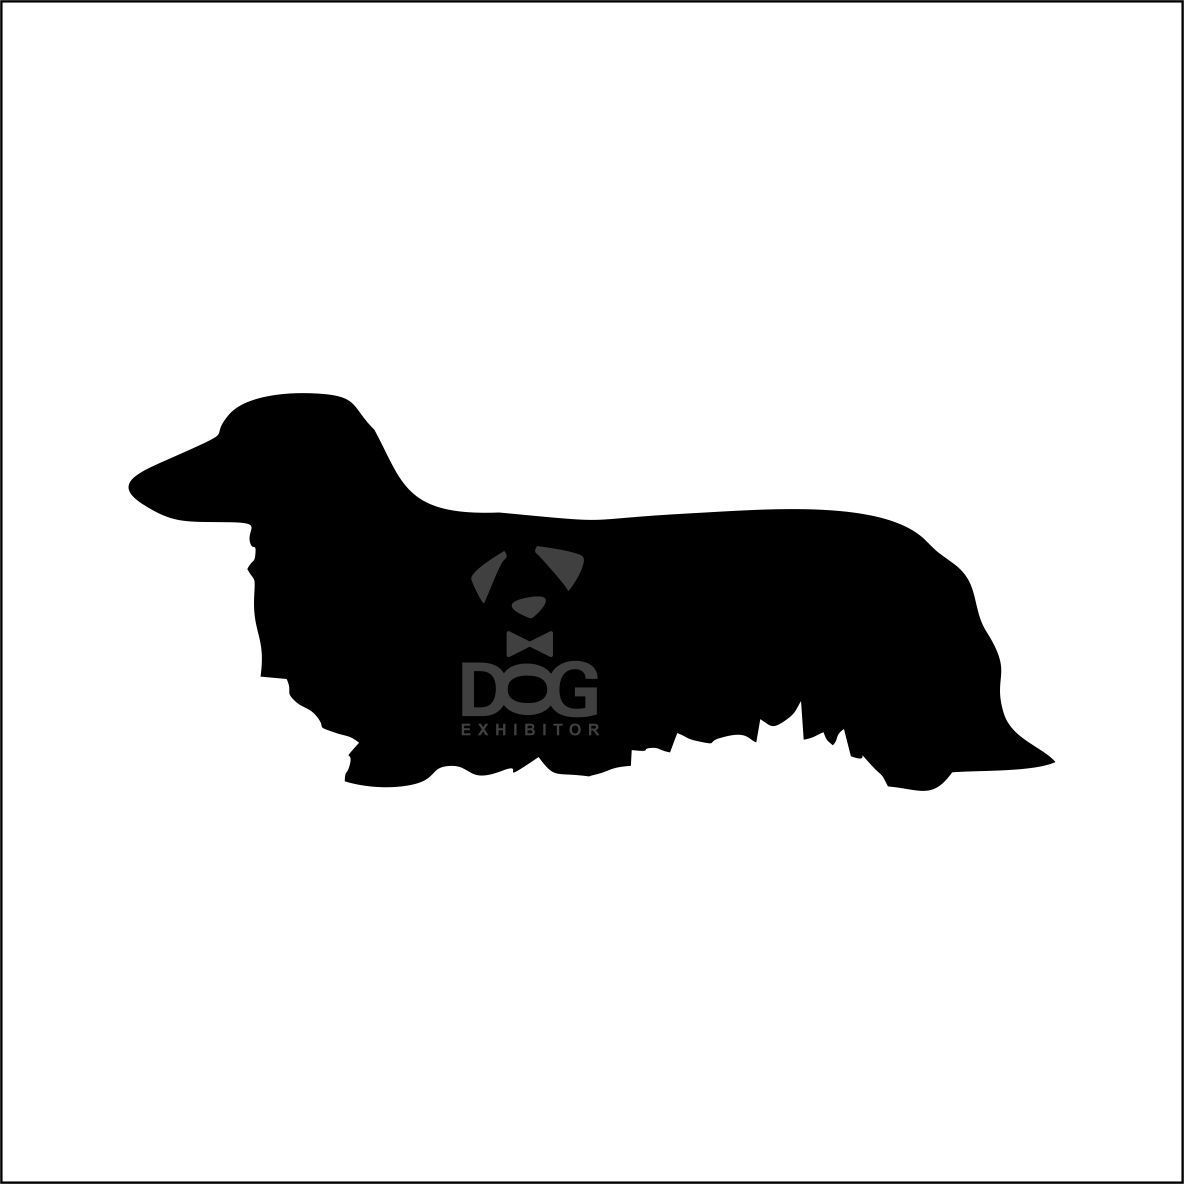 1184x1184 Long Haired Dachshund Silhouette Stickers